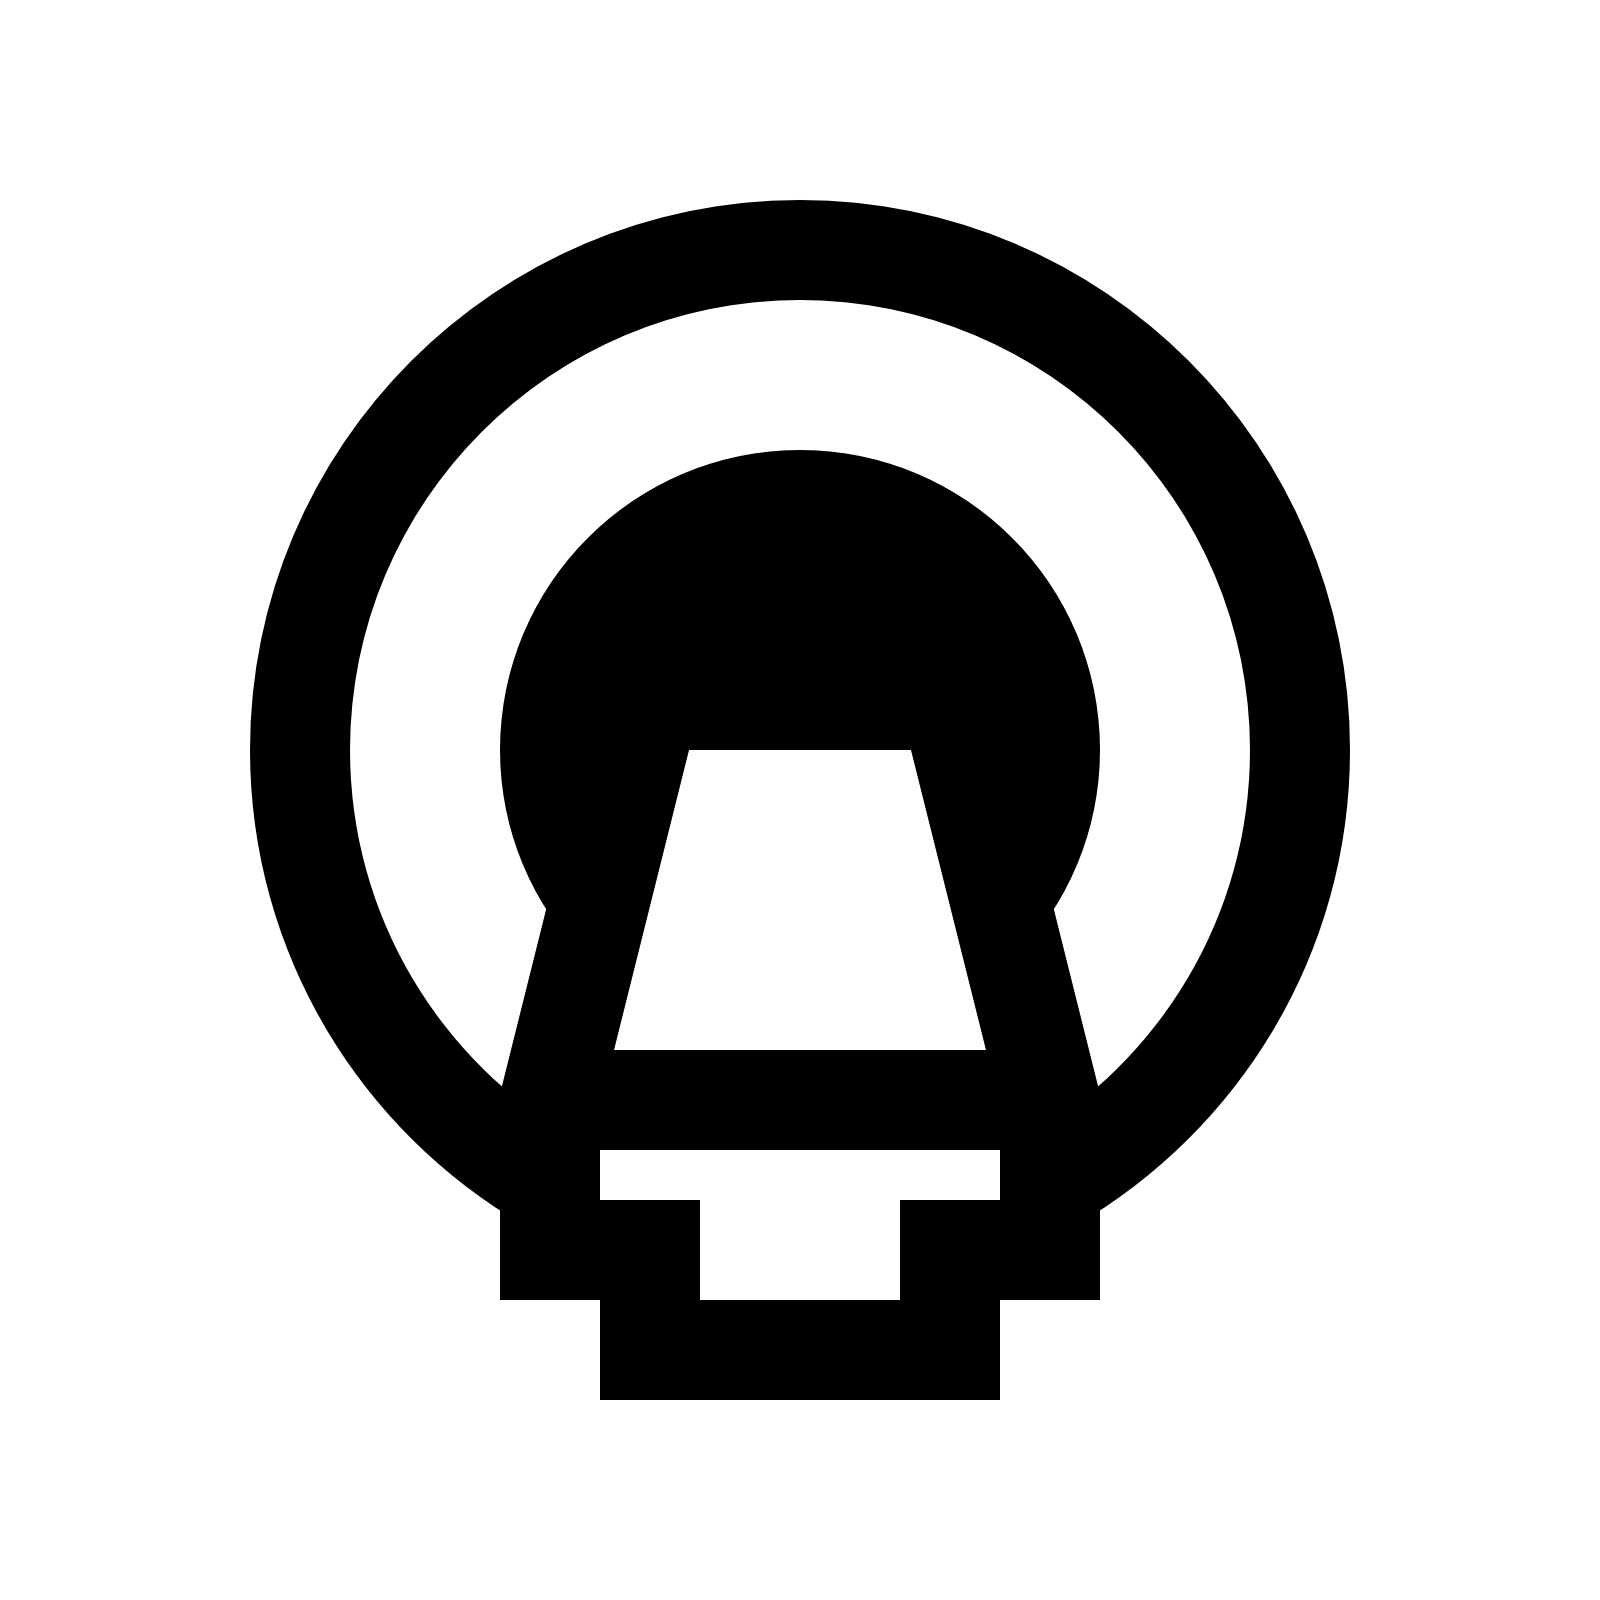 Radioactive clipart radiation therapy Free Microbeam Therapy Microbeam icon